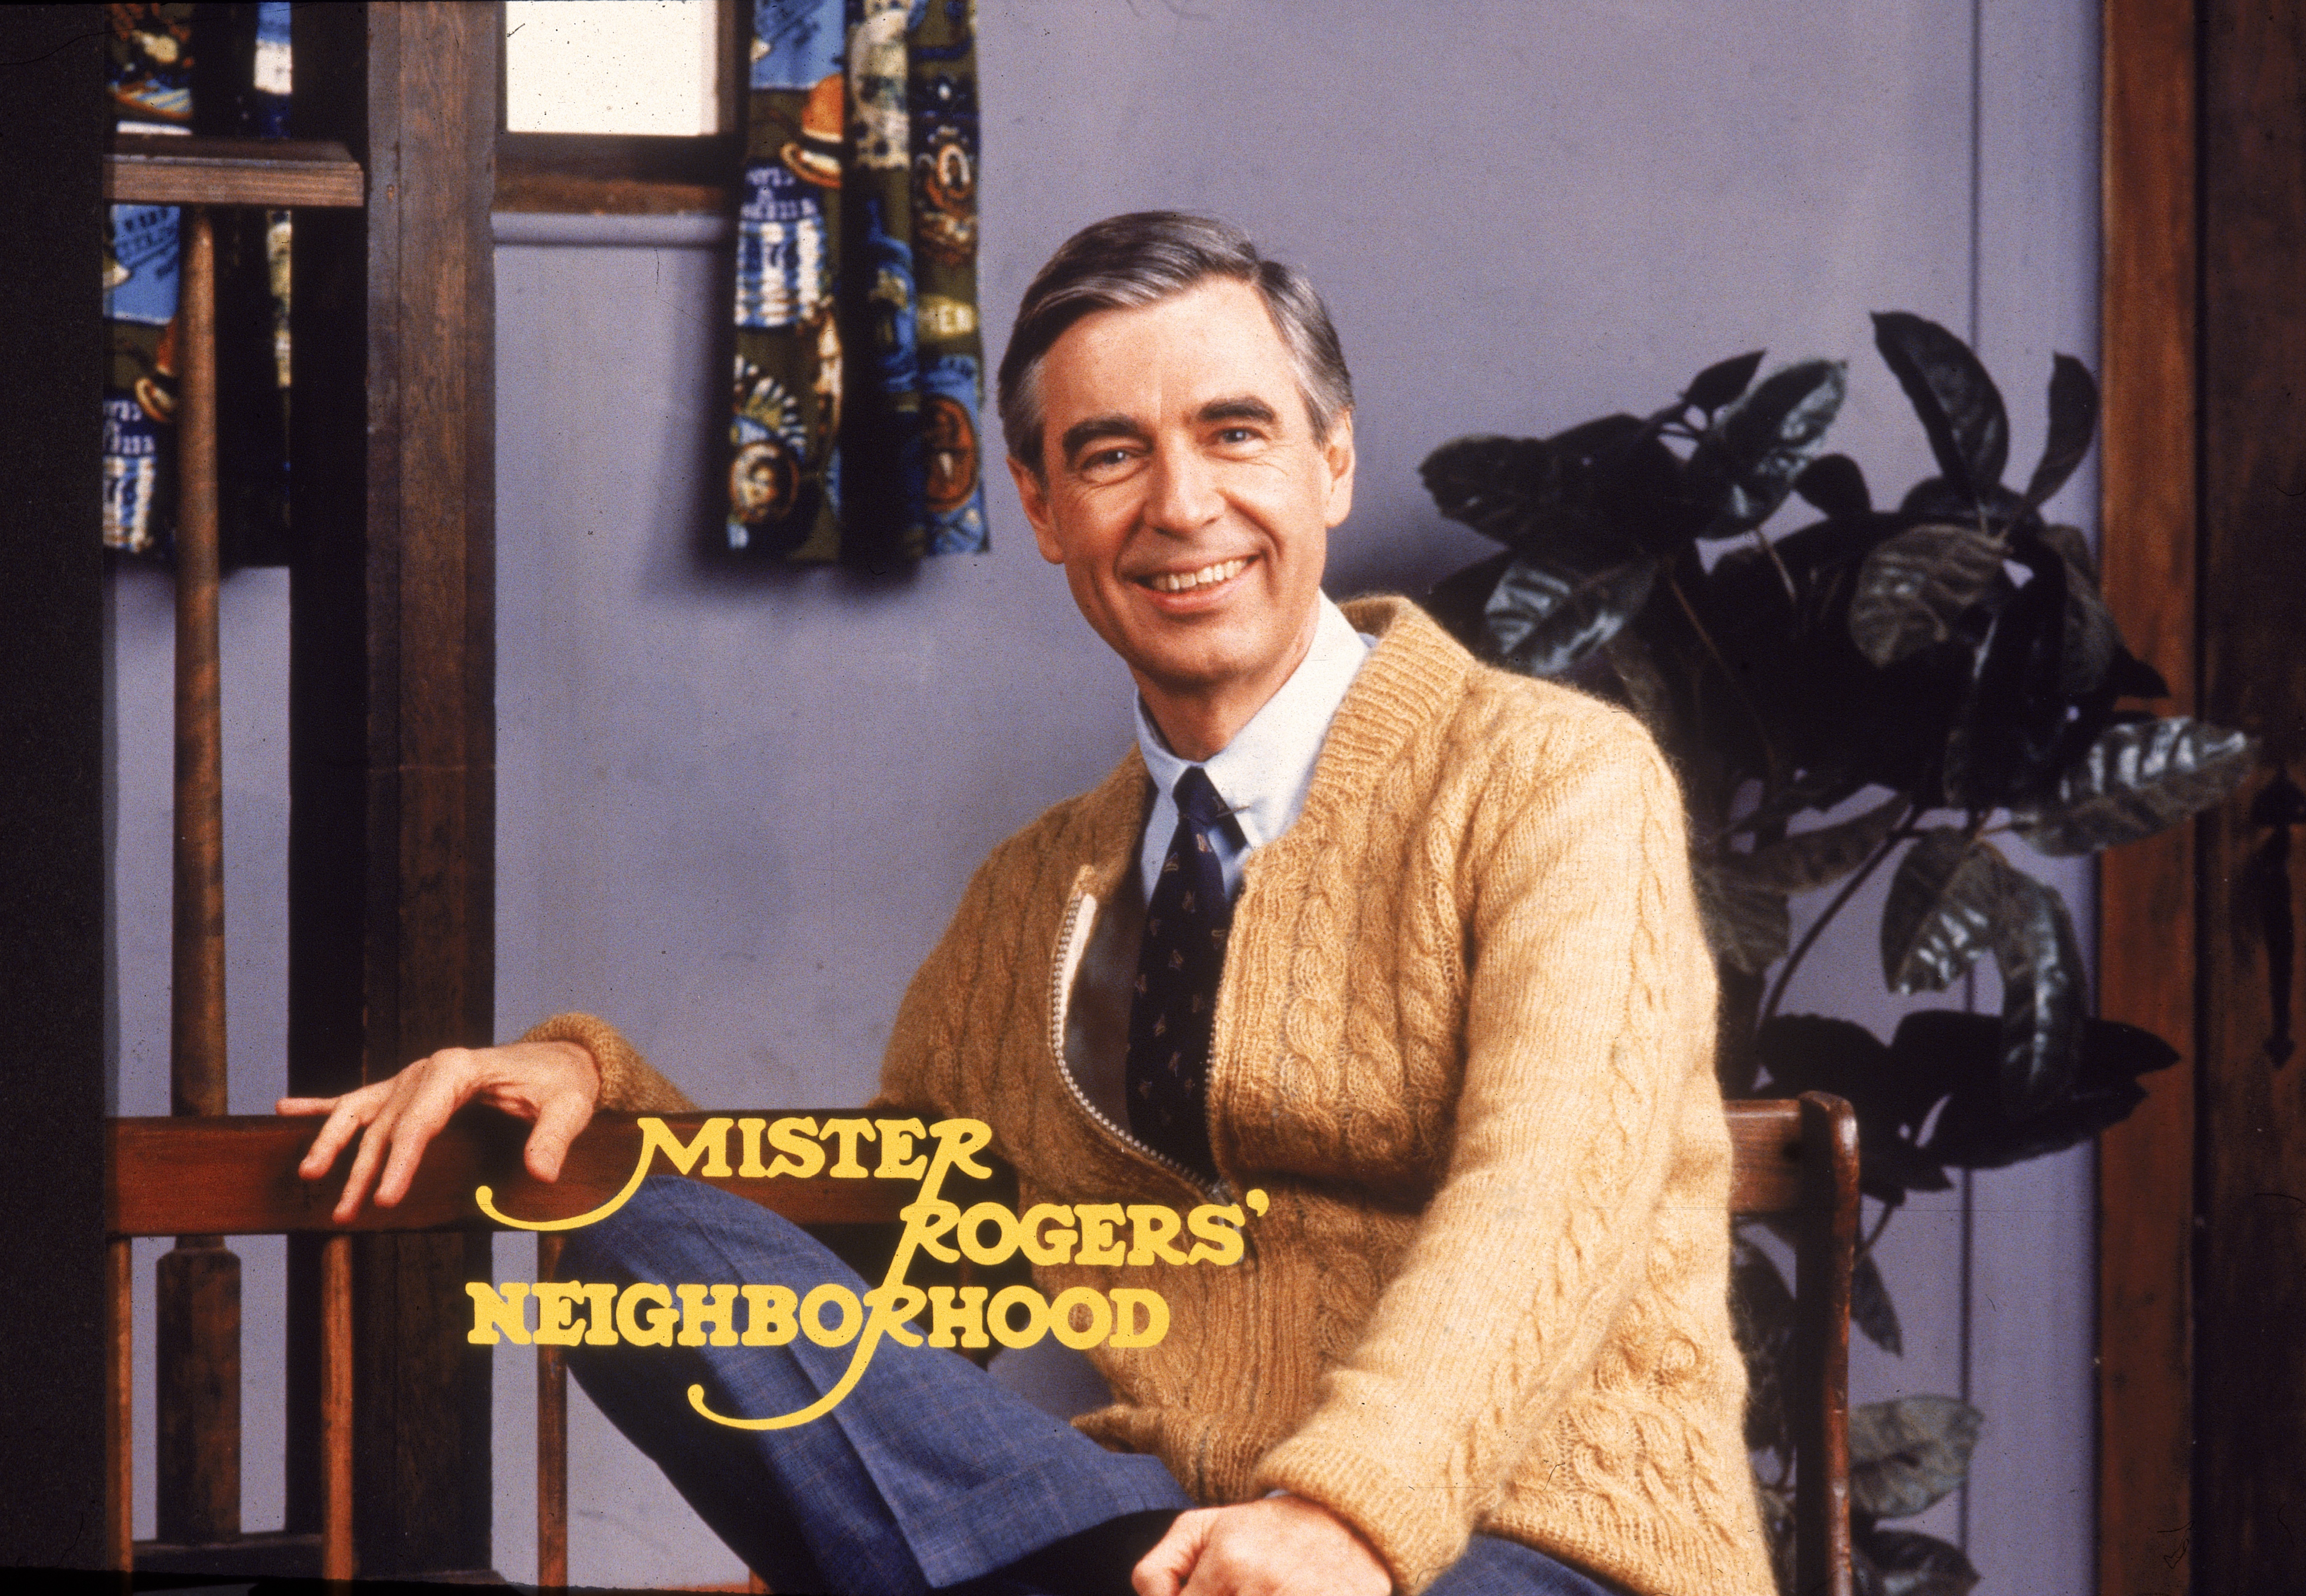 What S Come Out About Mister Rogers Since He Died